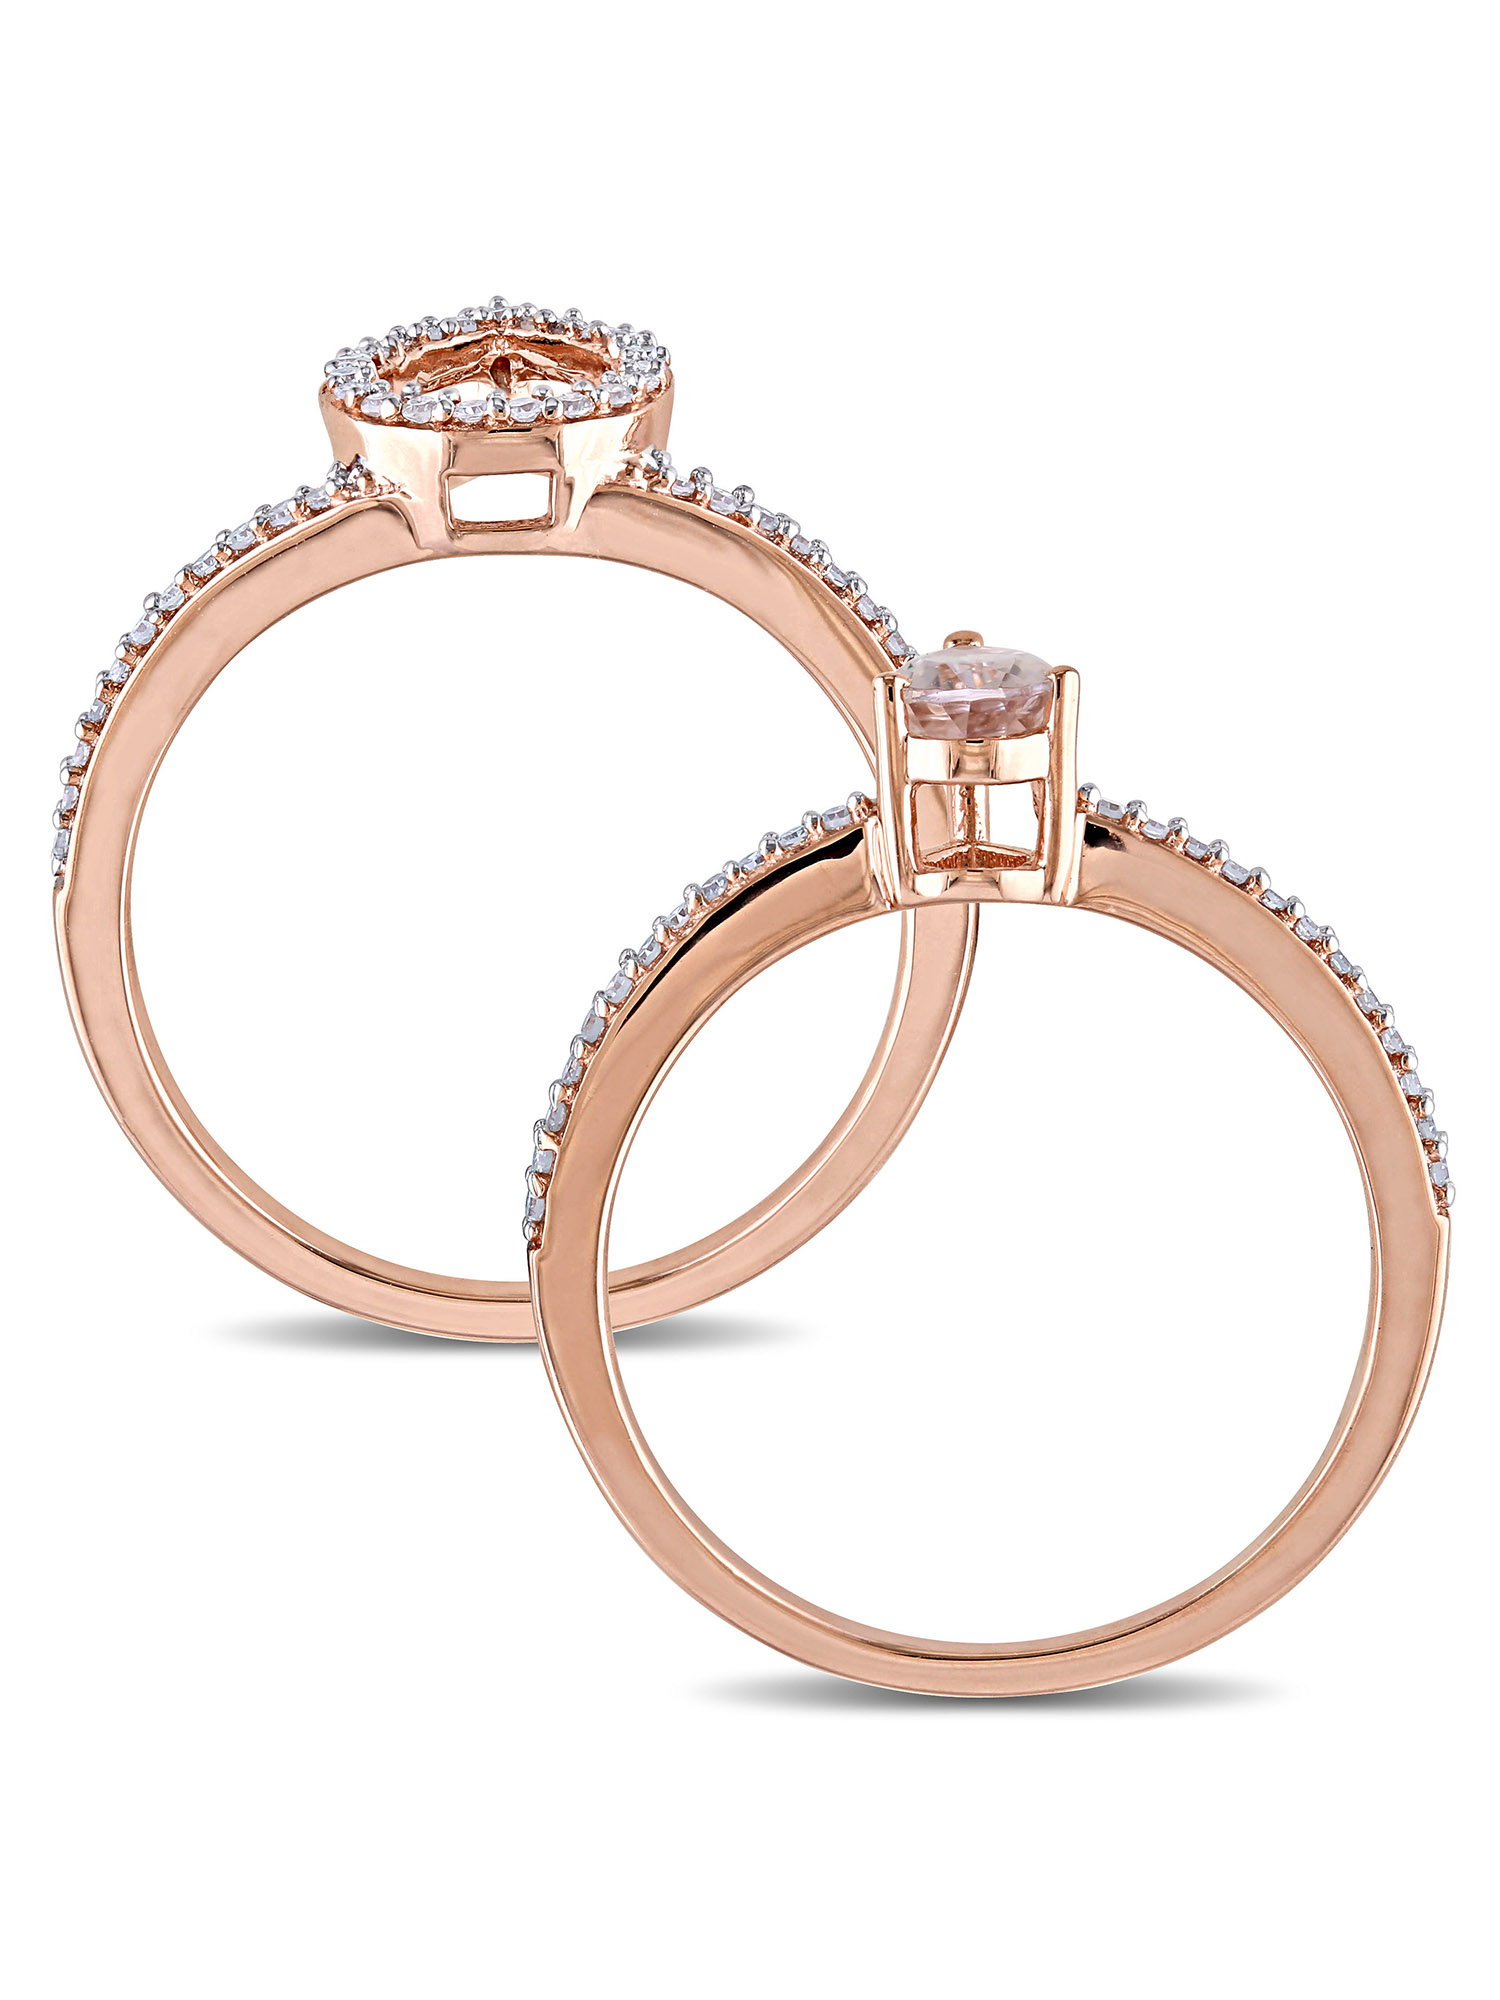 3/8 Carat T.G.W. Morganite and 1/3 Carat T.W. Diamond 10kt Rose Gold Interlocking Halo Bridal Set